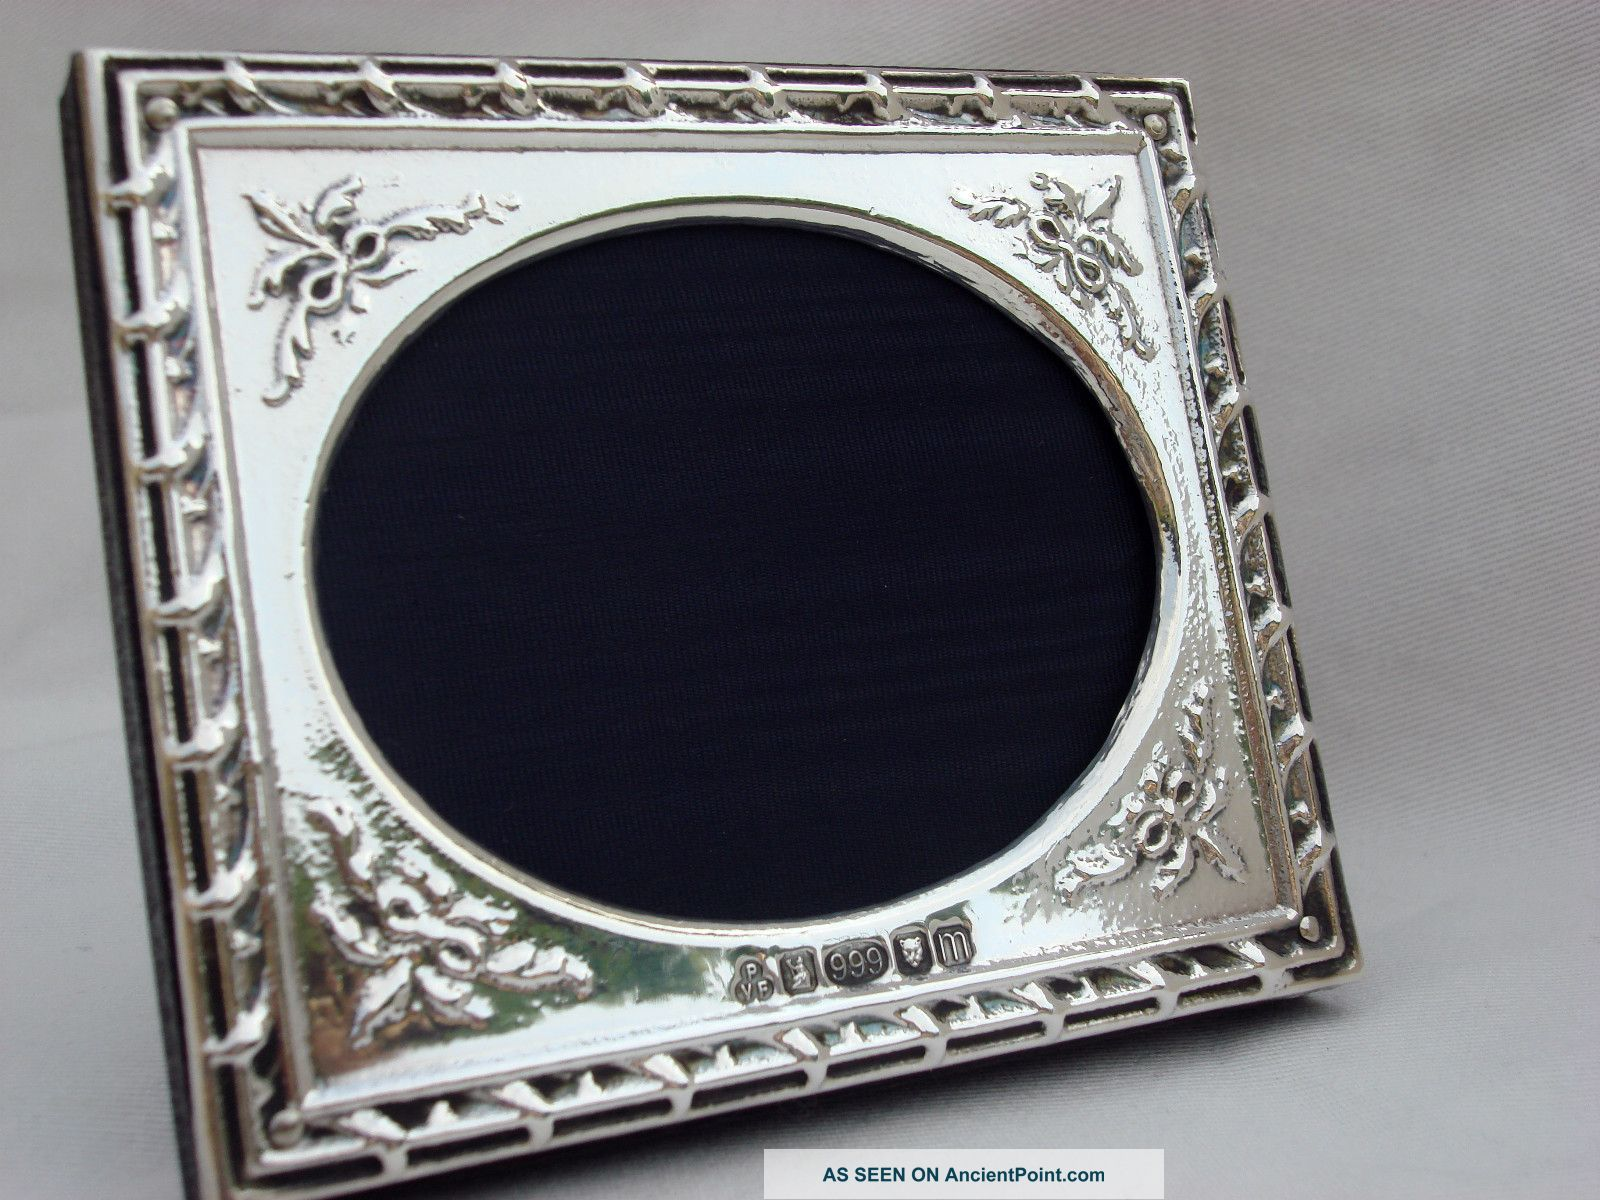 Finest Quality Silver 999 London Hallmarked Photo Frame Frames photo